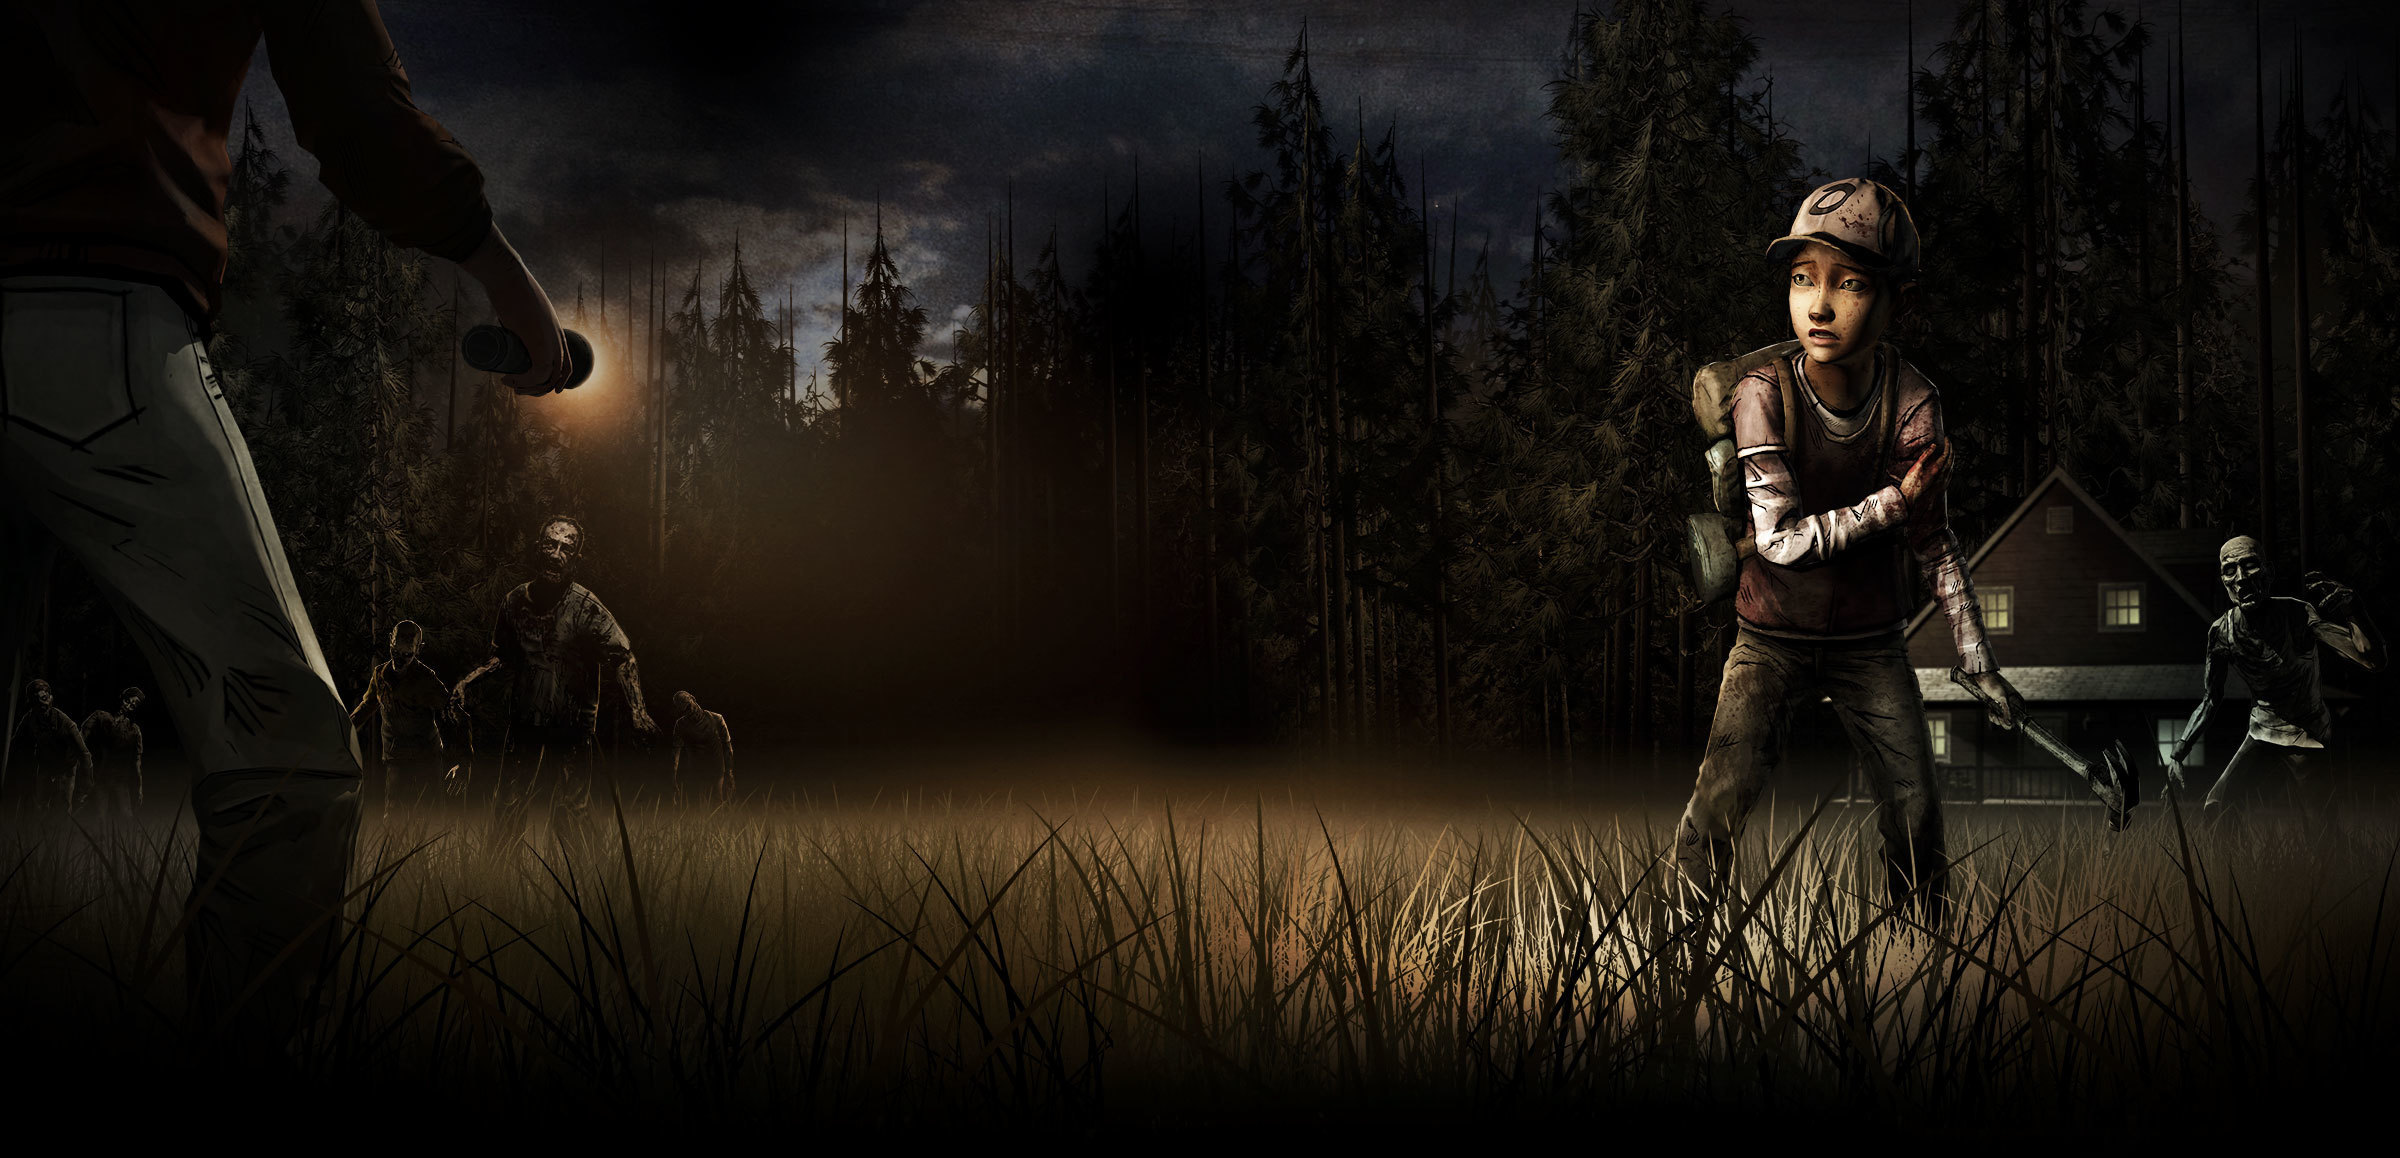 74 The Walking Dead Game Wallpaper On Wallpapersafari